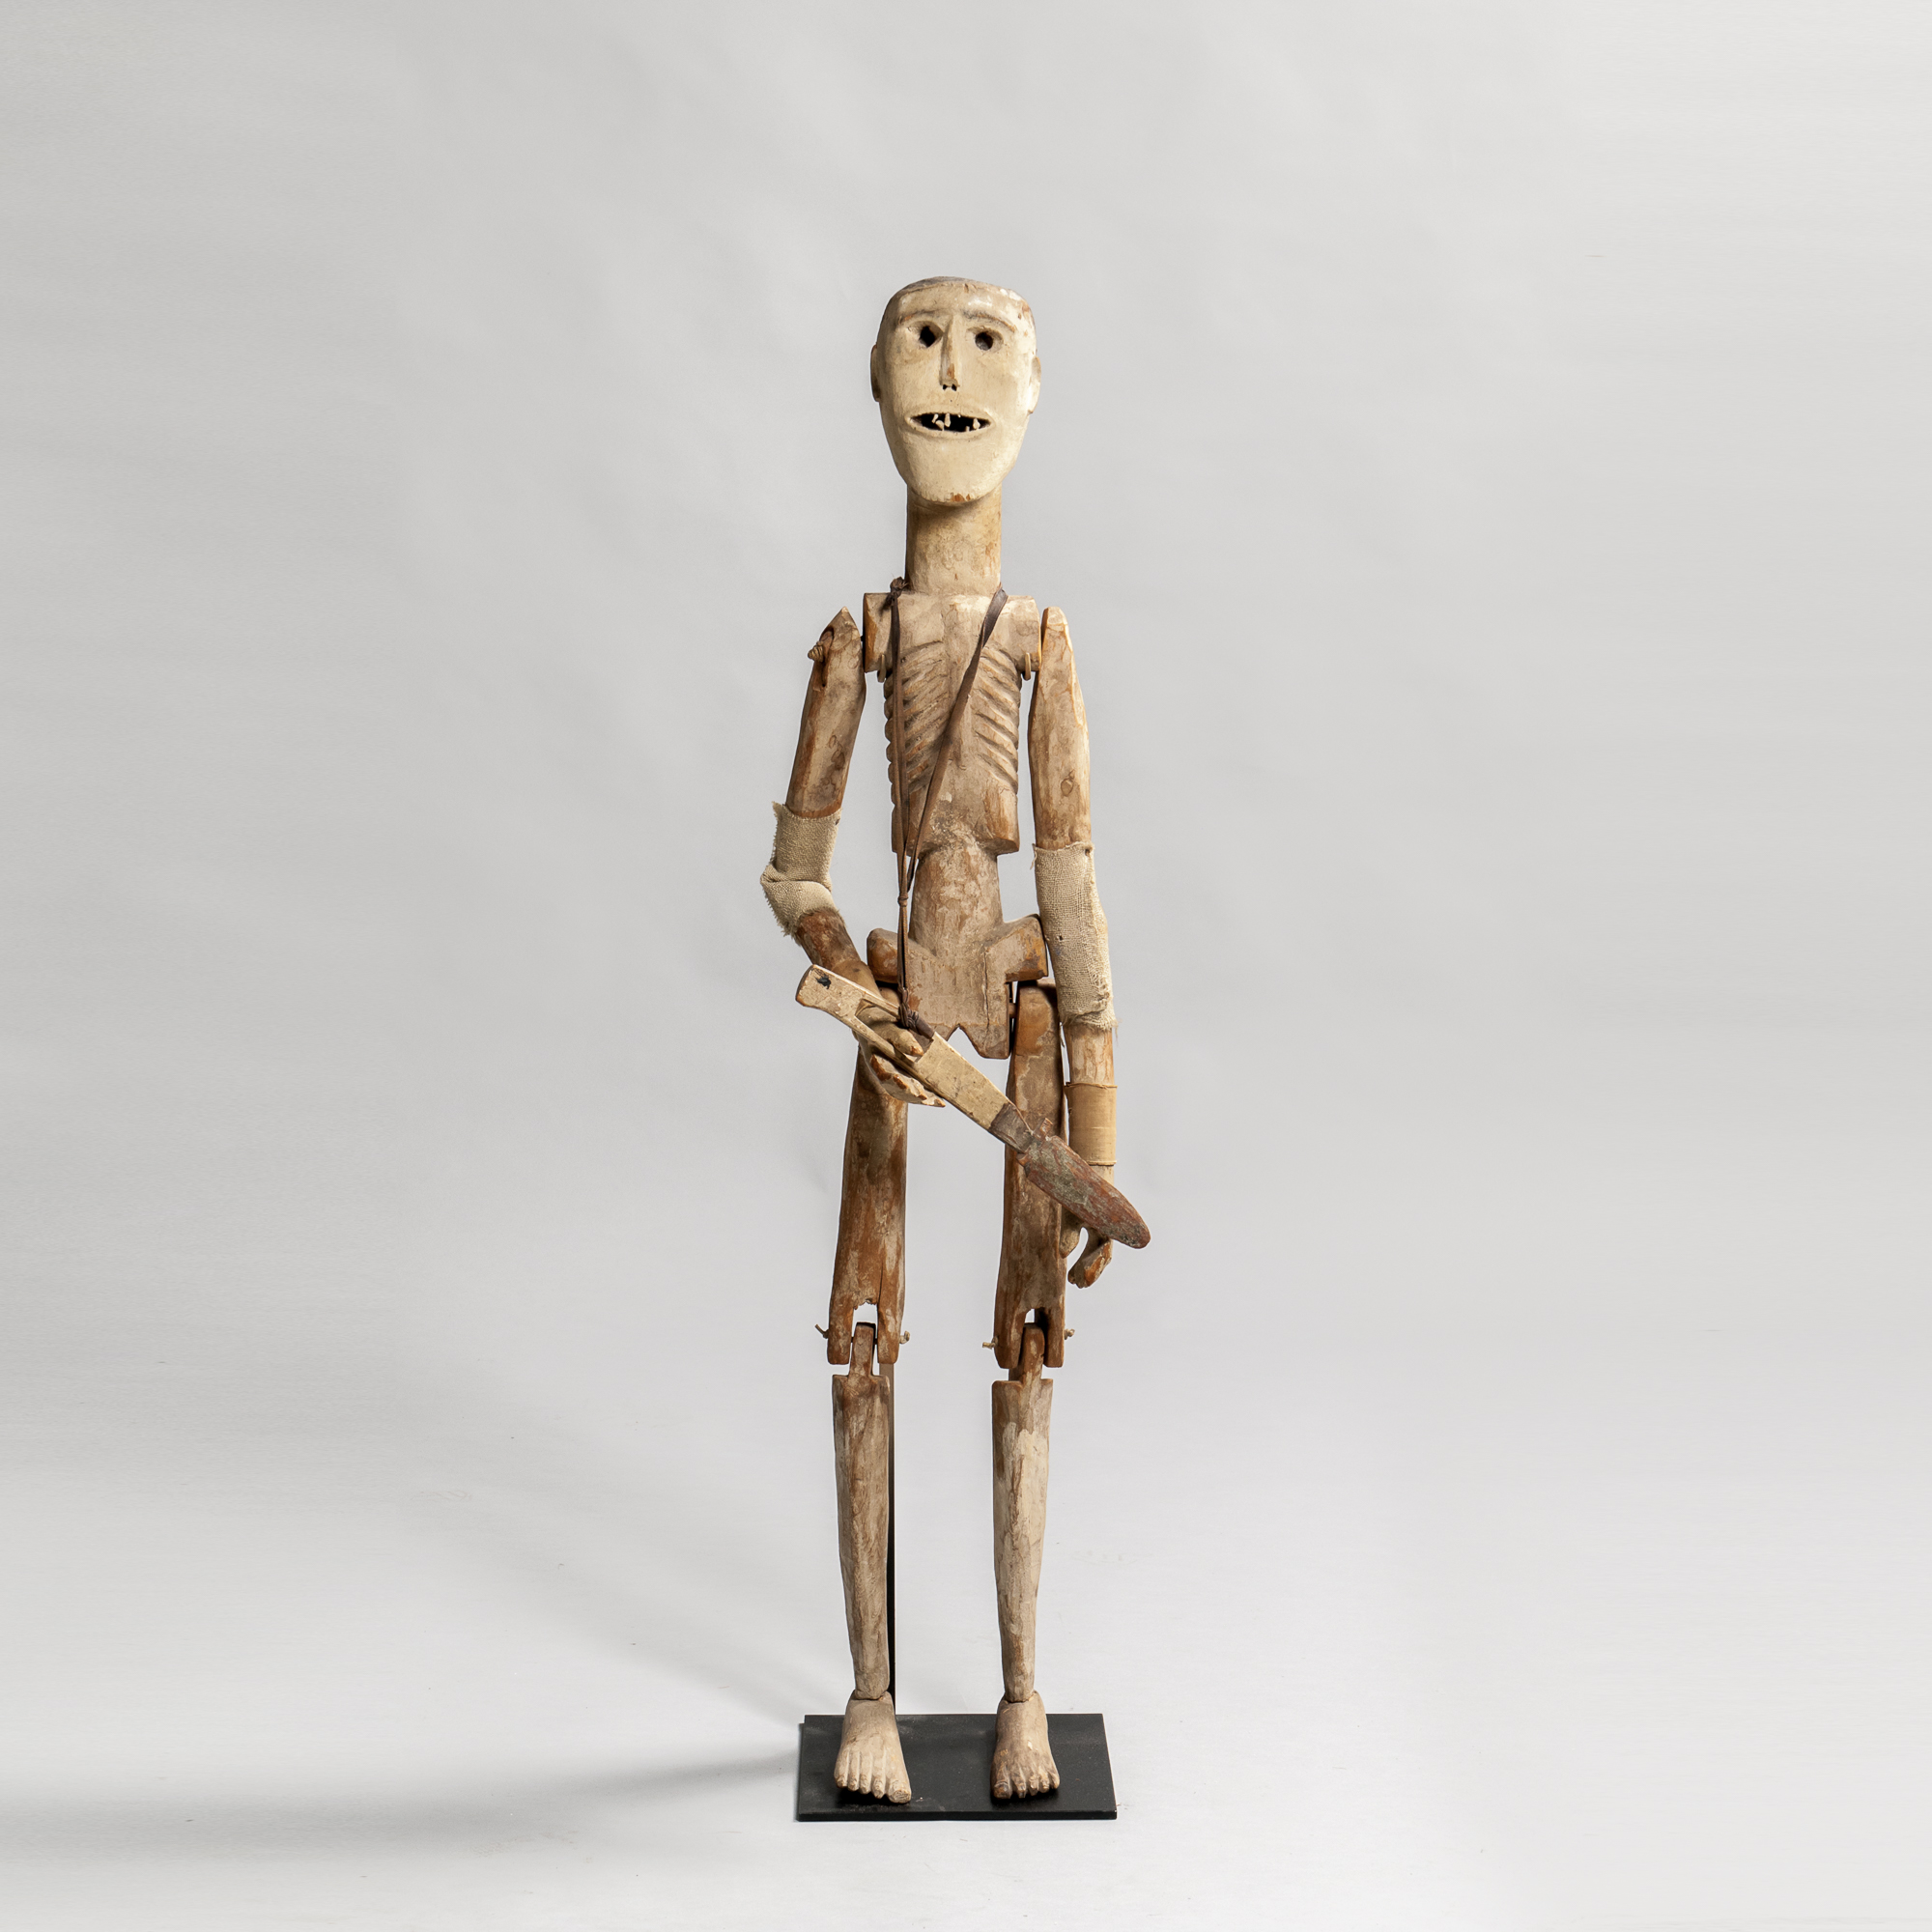 Carved and Painted Penitente Figure, New Mexico, Los Hermanos Penitentes Society, late 19th century (Lot 65, Estimate: $2,000-4,000)